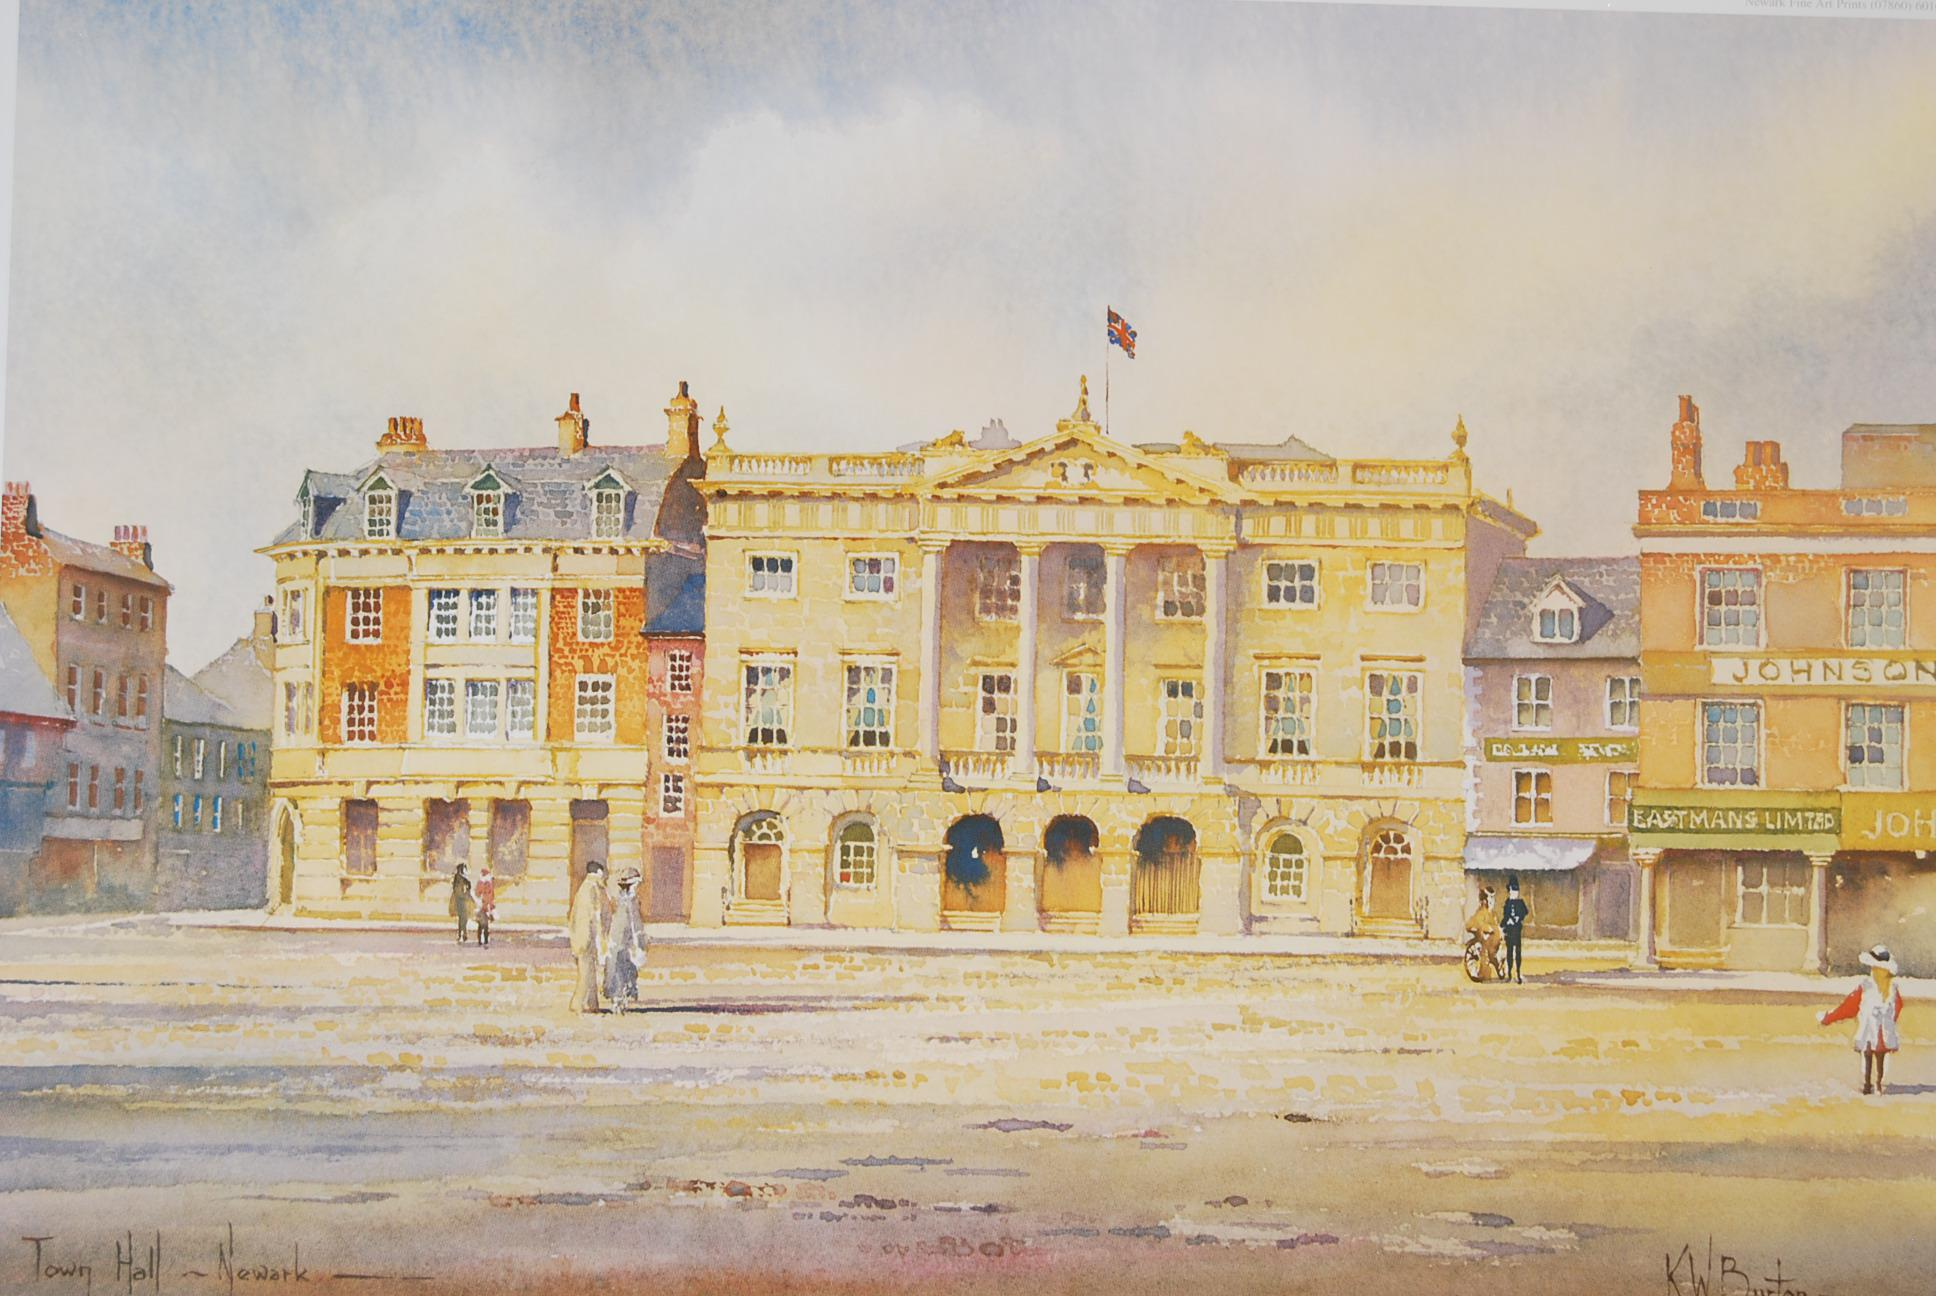 Town Hall Newark by KW Burton